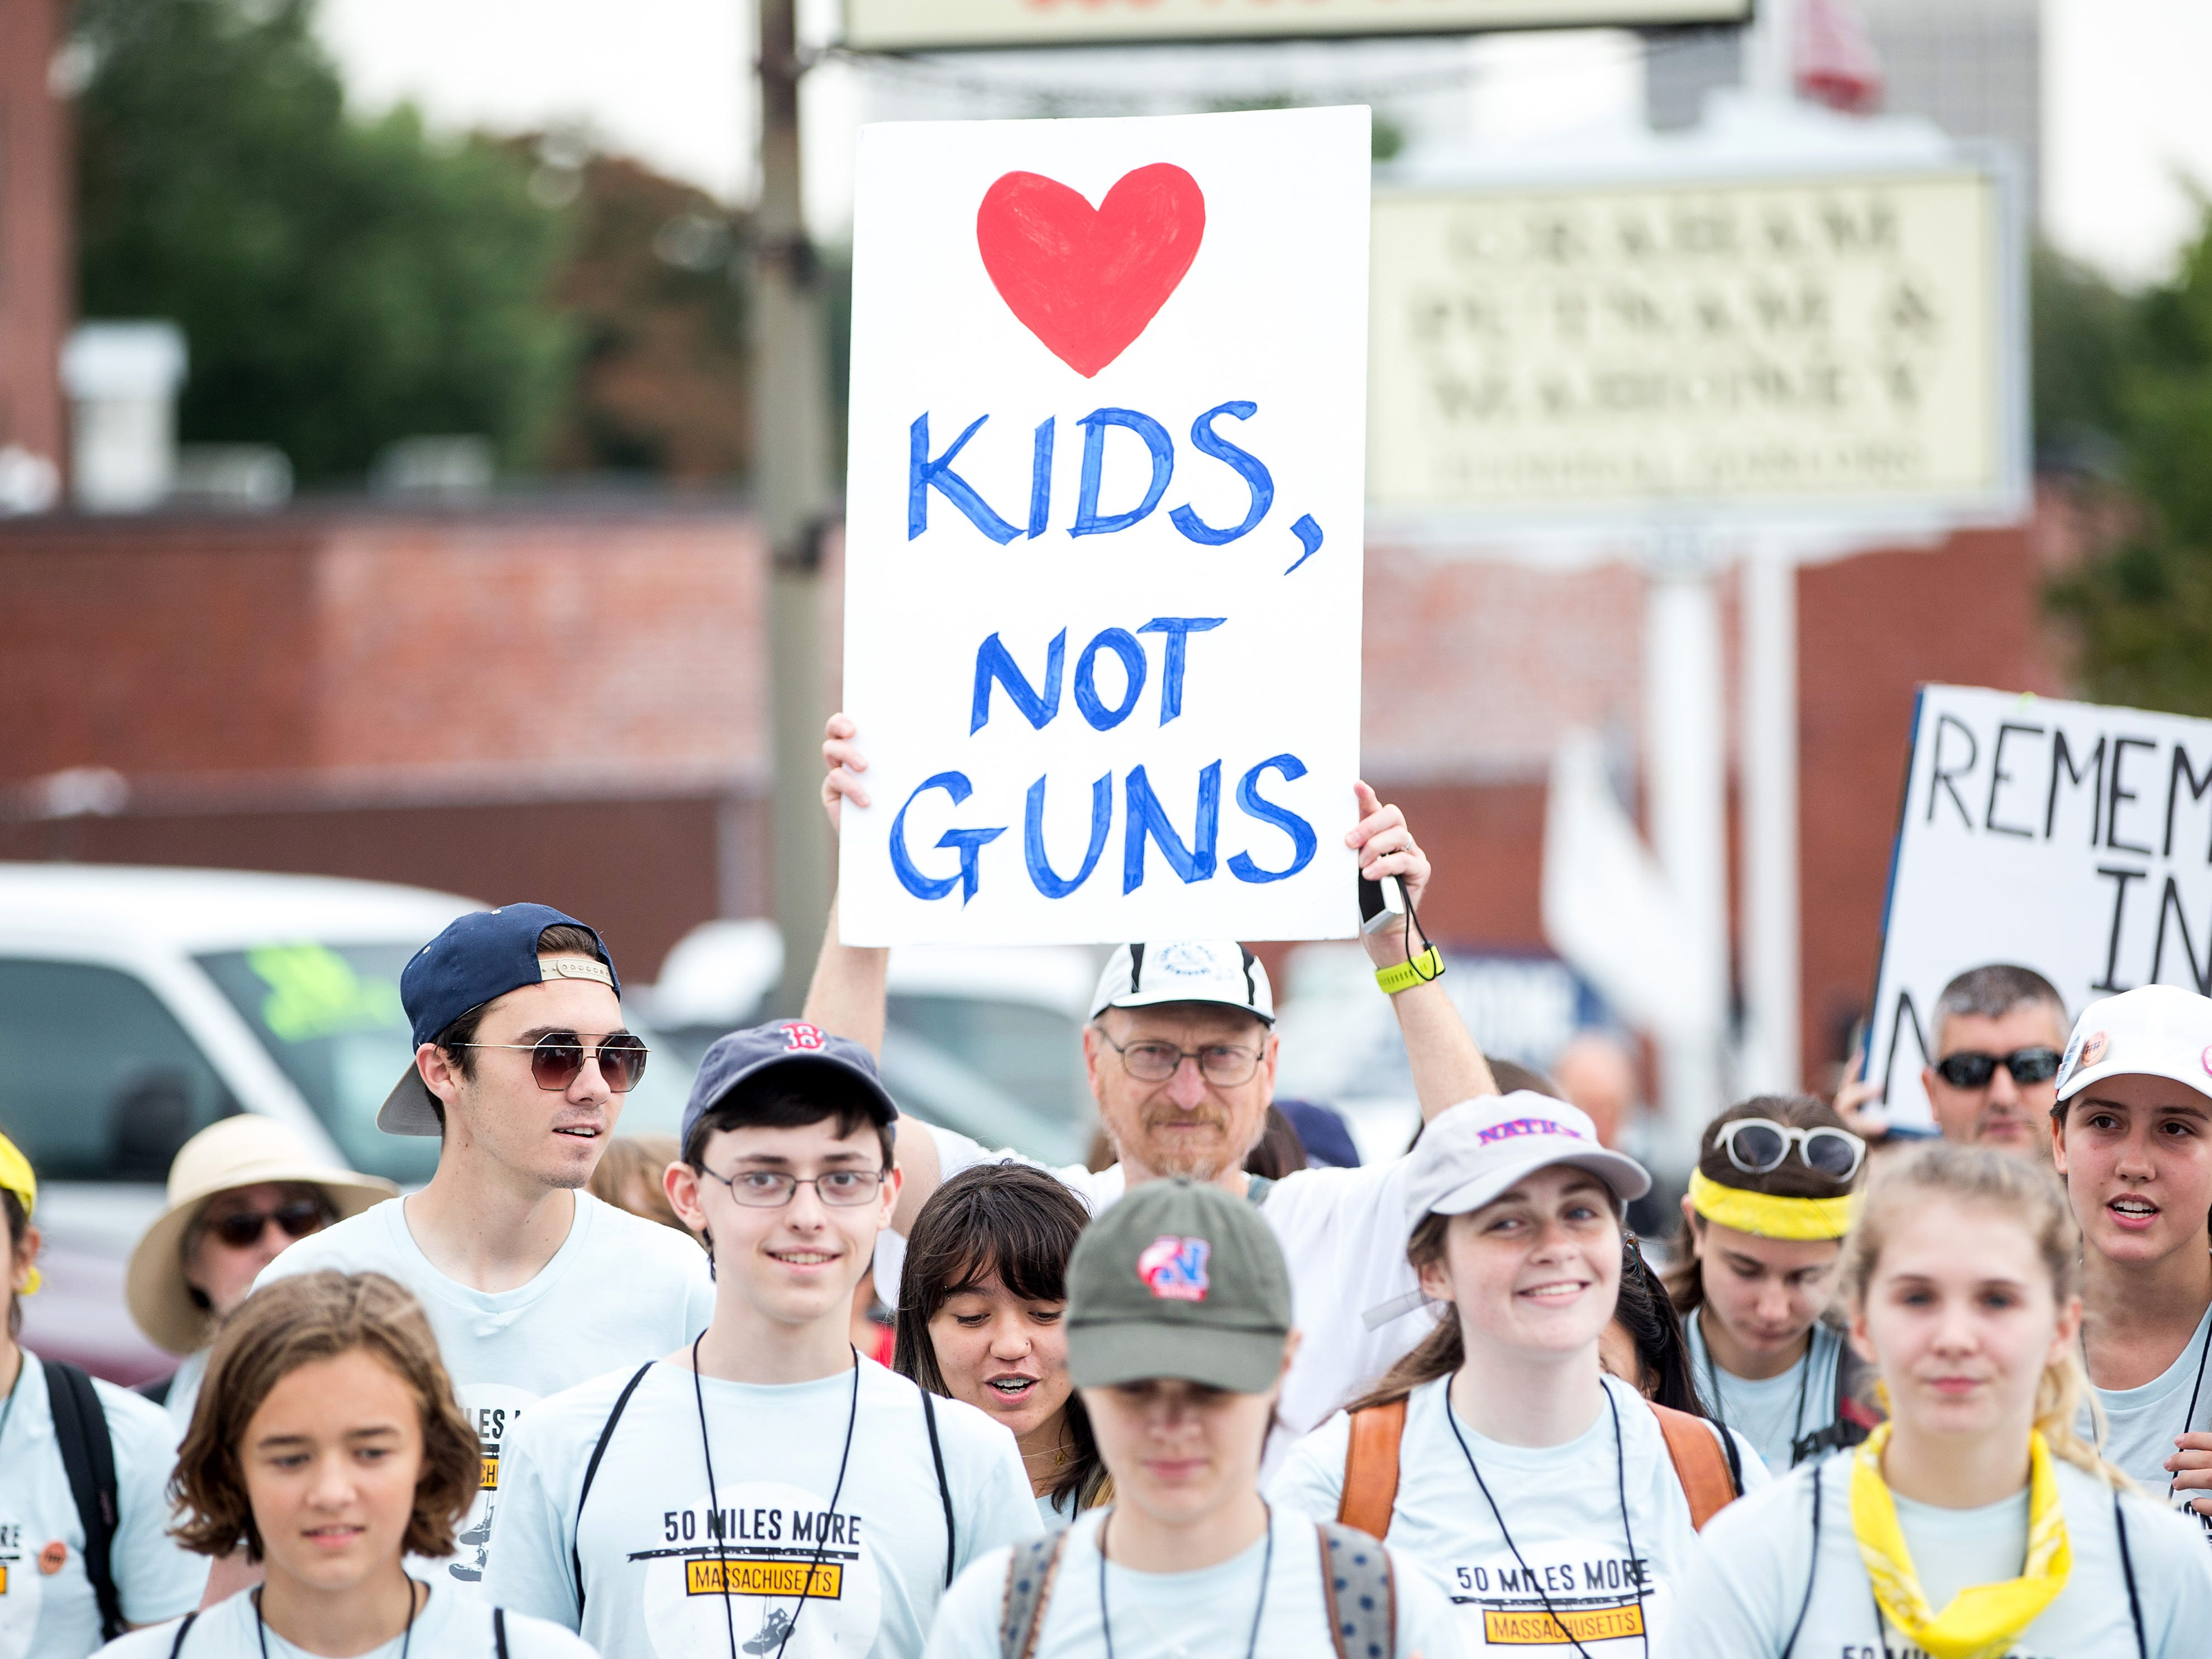 Parkland Shooting survivor and activist David Hogg, third from left, walks during the 50 Miles More walk against gun violence which will end with a protest at the Smith and Wesson Firearms factory on Aug. 23, 2018 in Worcester, Mass. After the Parkland, Florida mass shooting, 50 Miles More was organized to engage young people in the effort to bring about gun reform legislation.